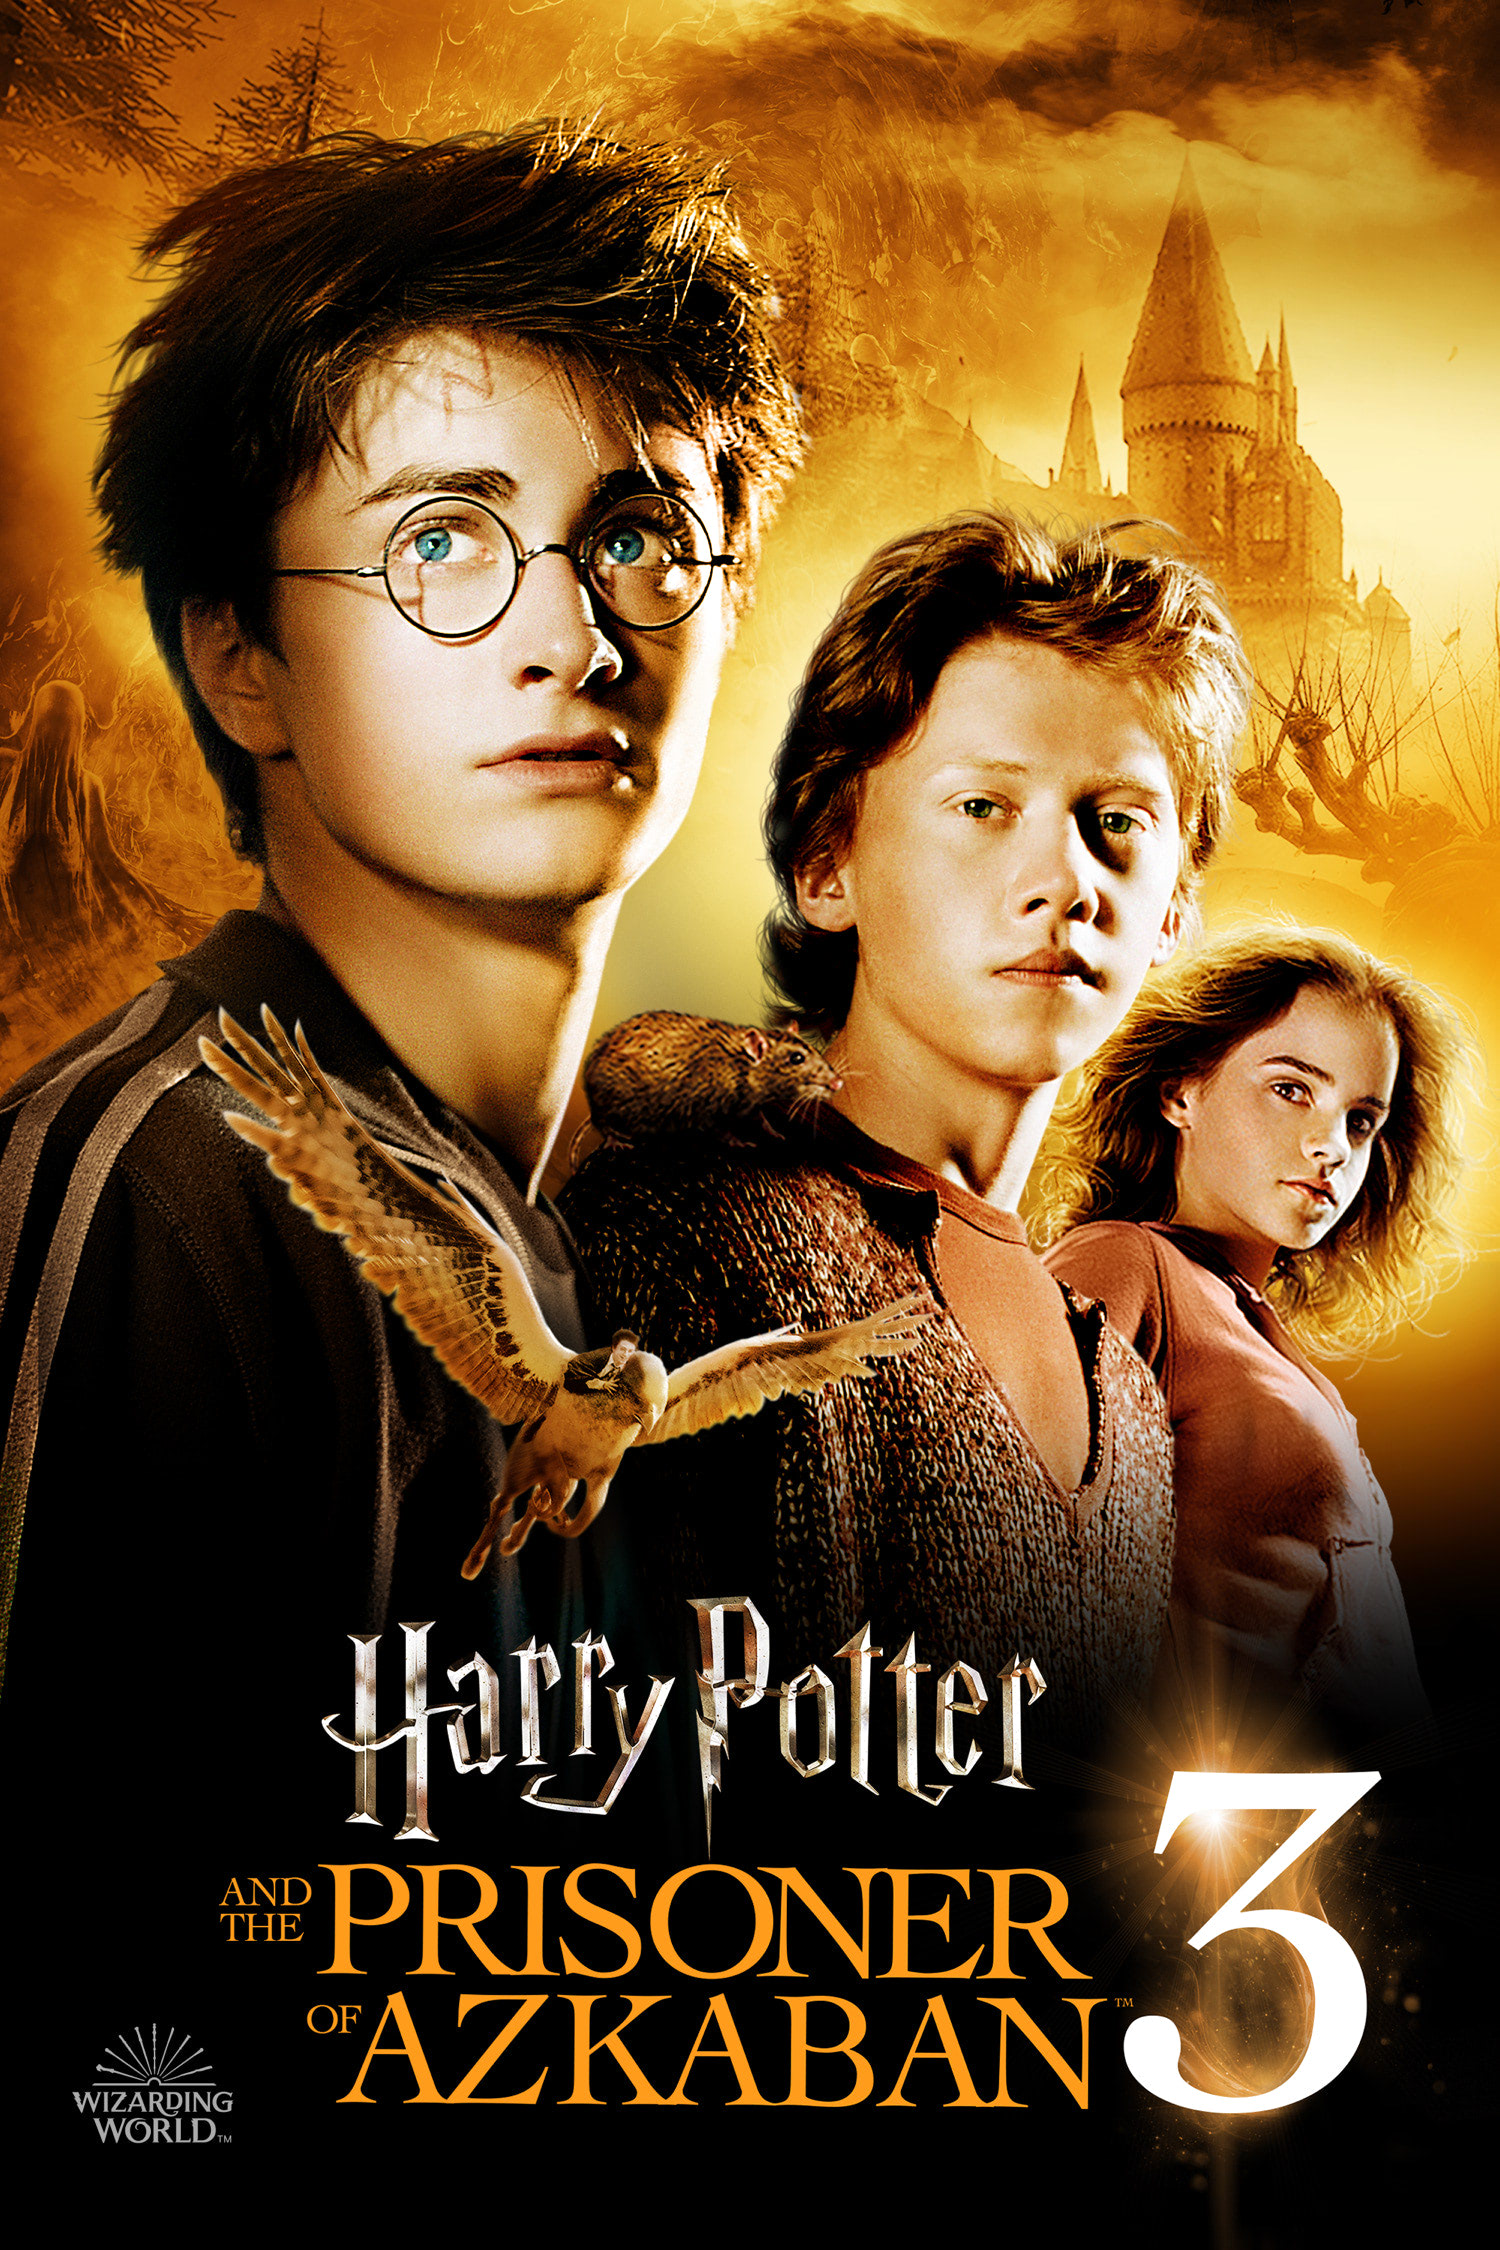 'Prisoner of Azkaban' Wizarding World poster